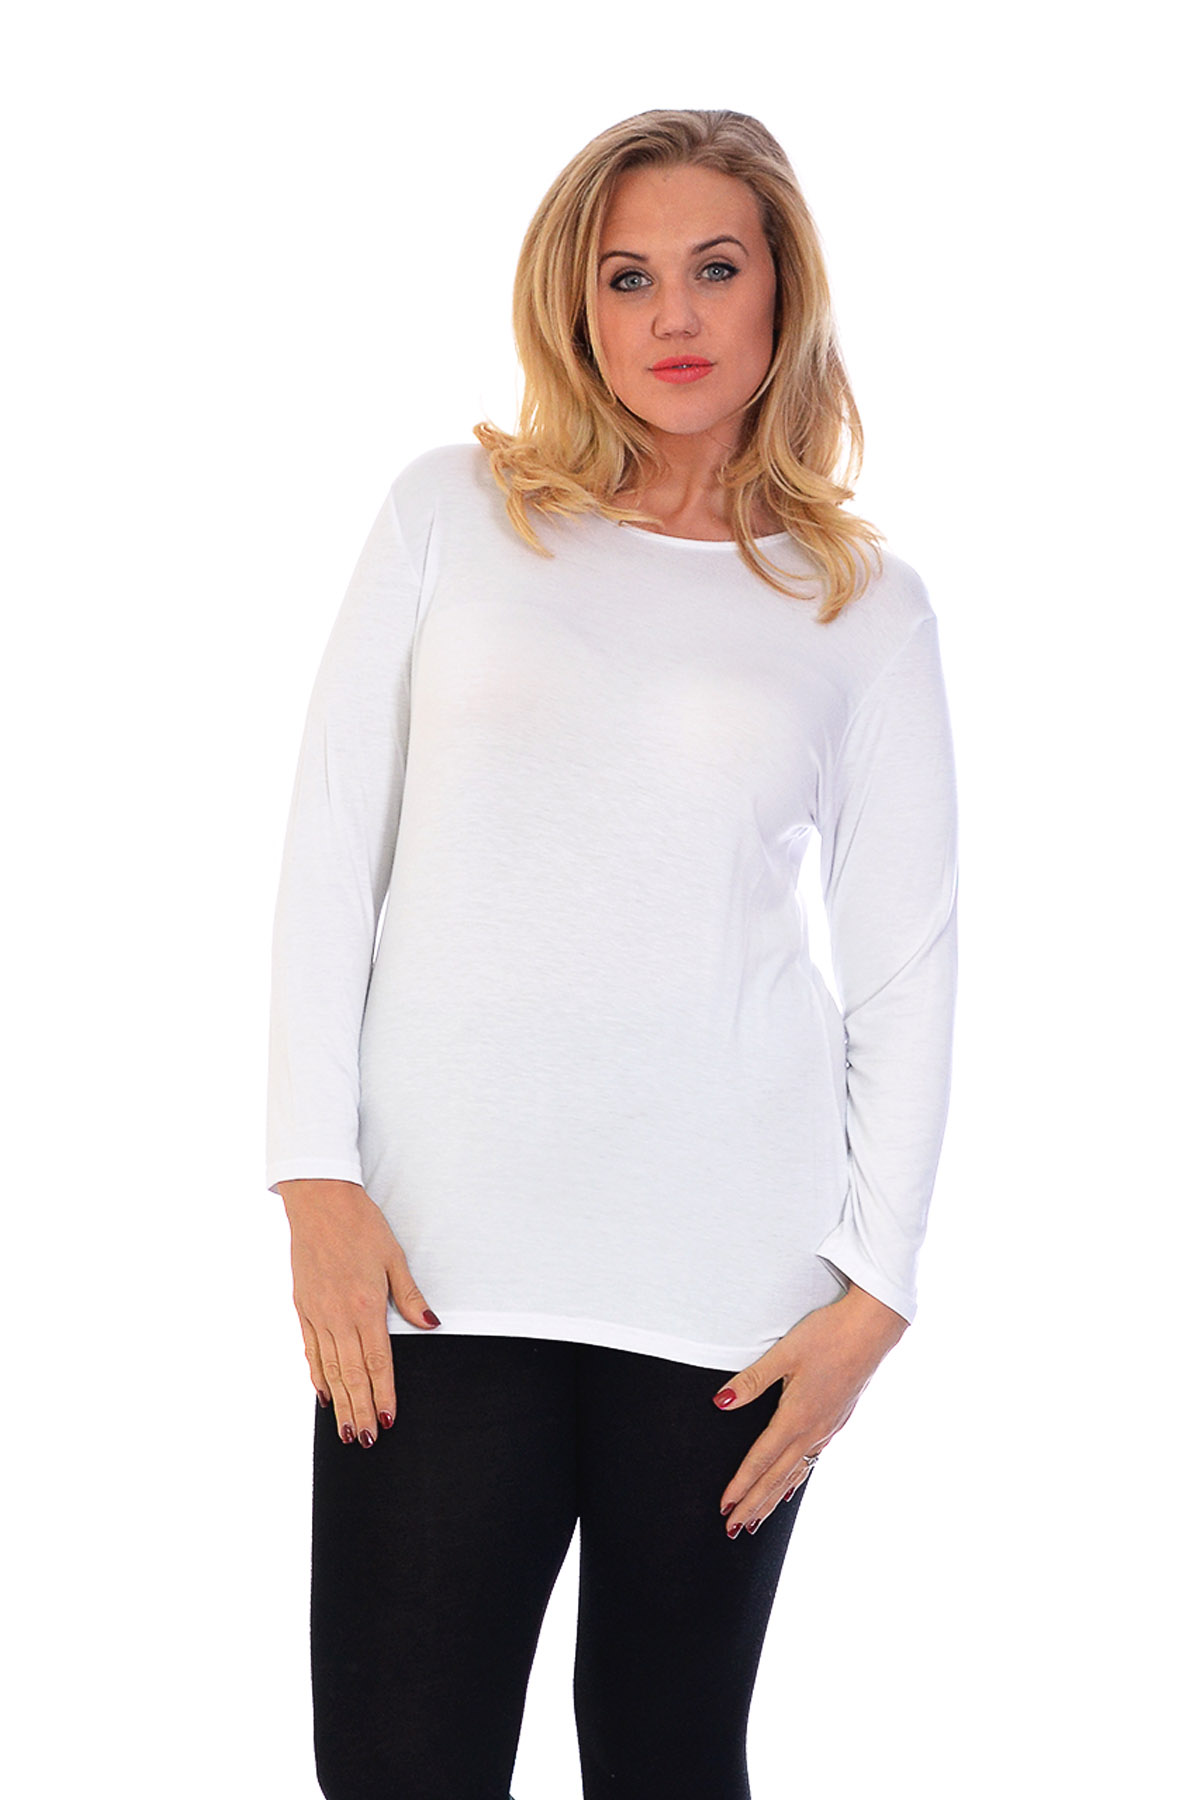 8a794c51fe63 New Ladies T-Shirt Plus Size Womens Top Plain Long Sleeve Basic Sale  Nouvelle